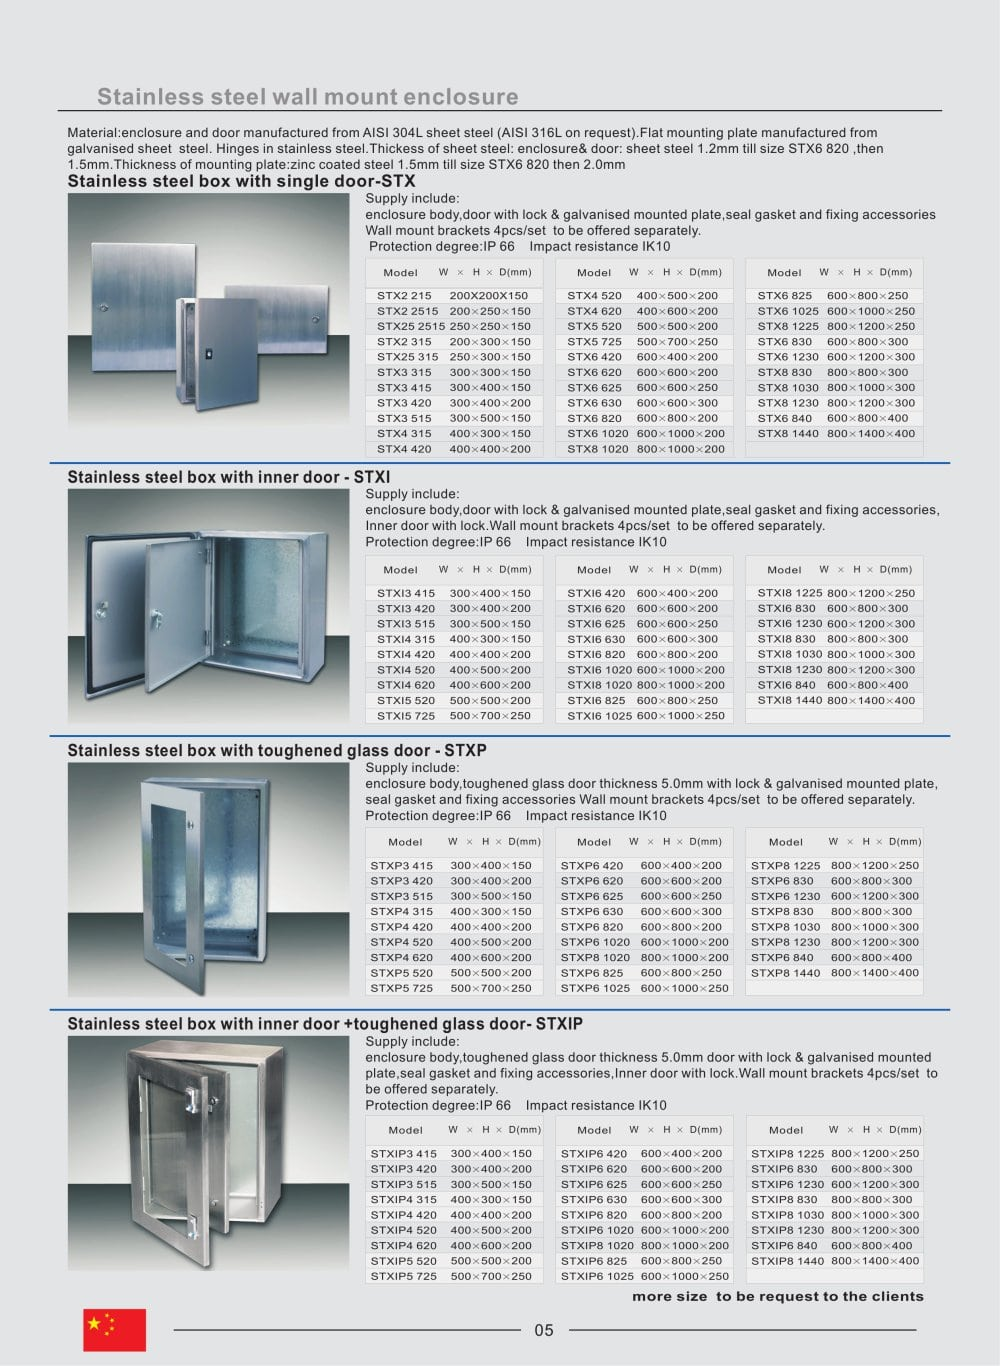 TIBOX-stainless steel wall mounting enclosures-electrical control board panel - 3 Pages  sc 1 st  Catalogues Directindustry & TIBOX-stainless steel wall mounting enclosures-electrical control ...